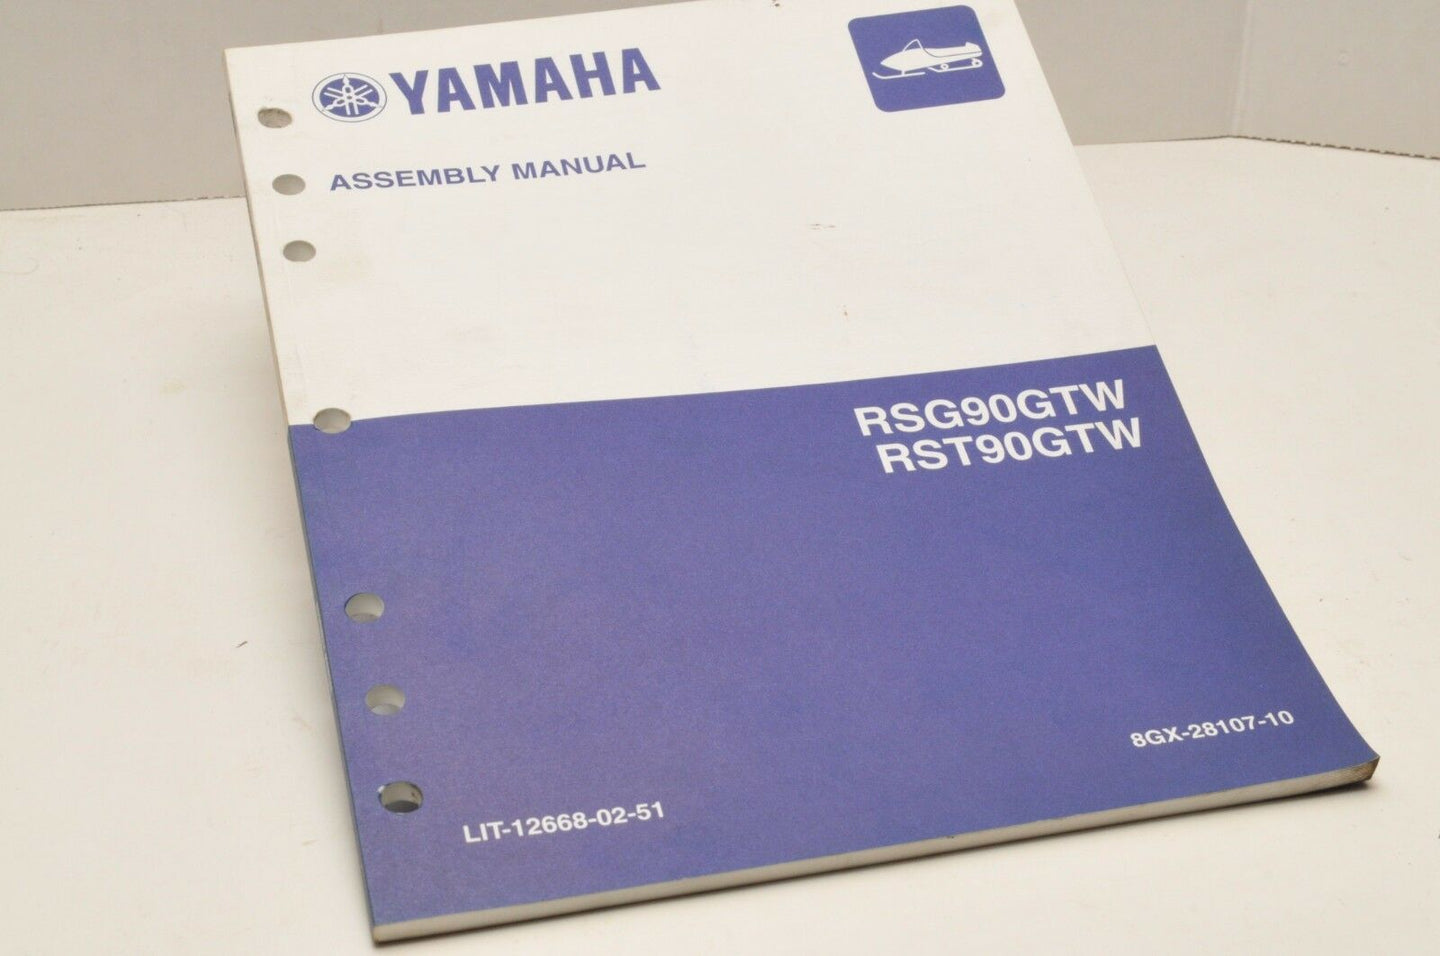 Genuine Yamaha FACTORY ASSEMBLY SETUP MANUAL RAGE GT 2007 LIT-12668-02-51